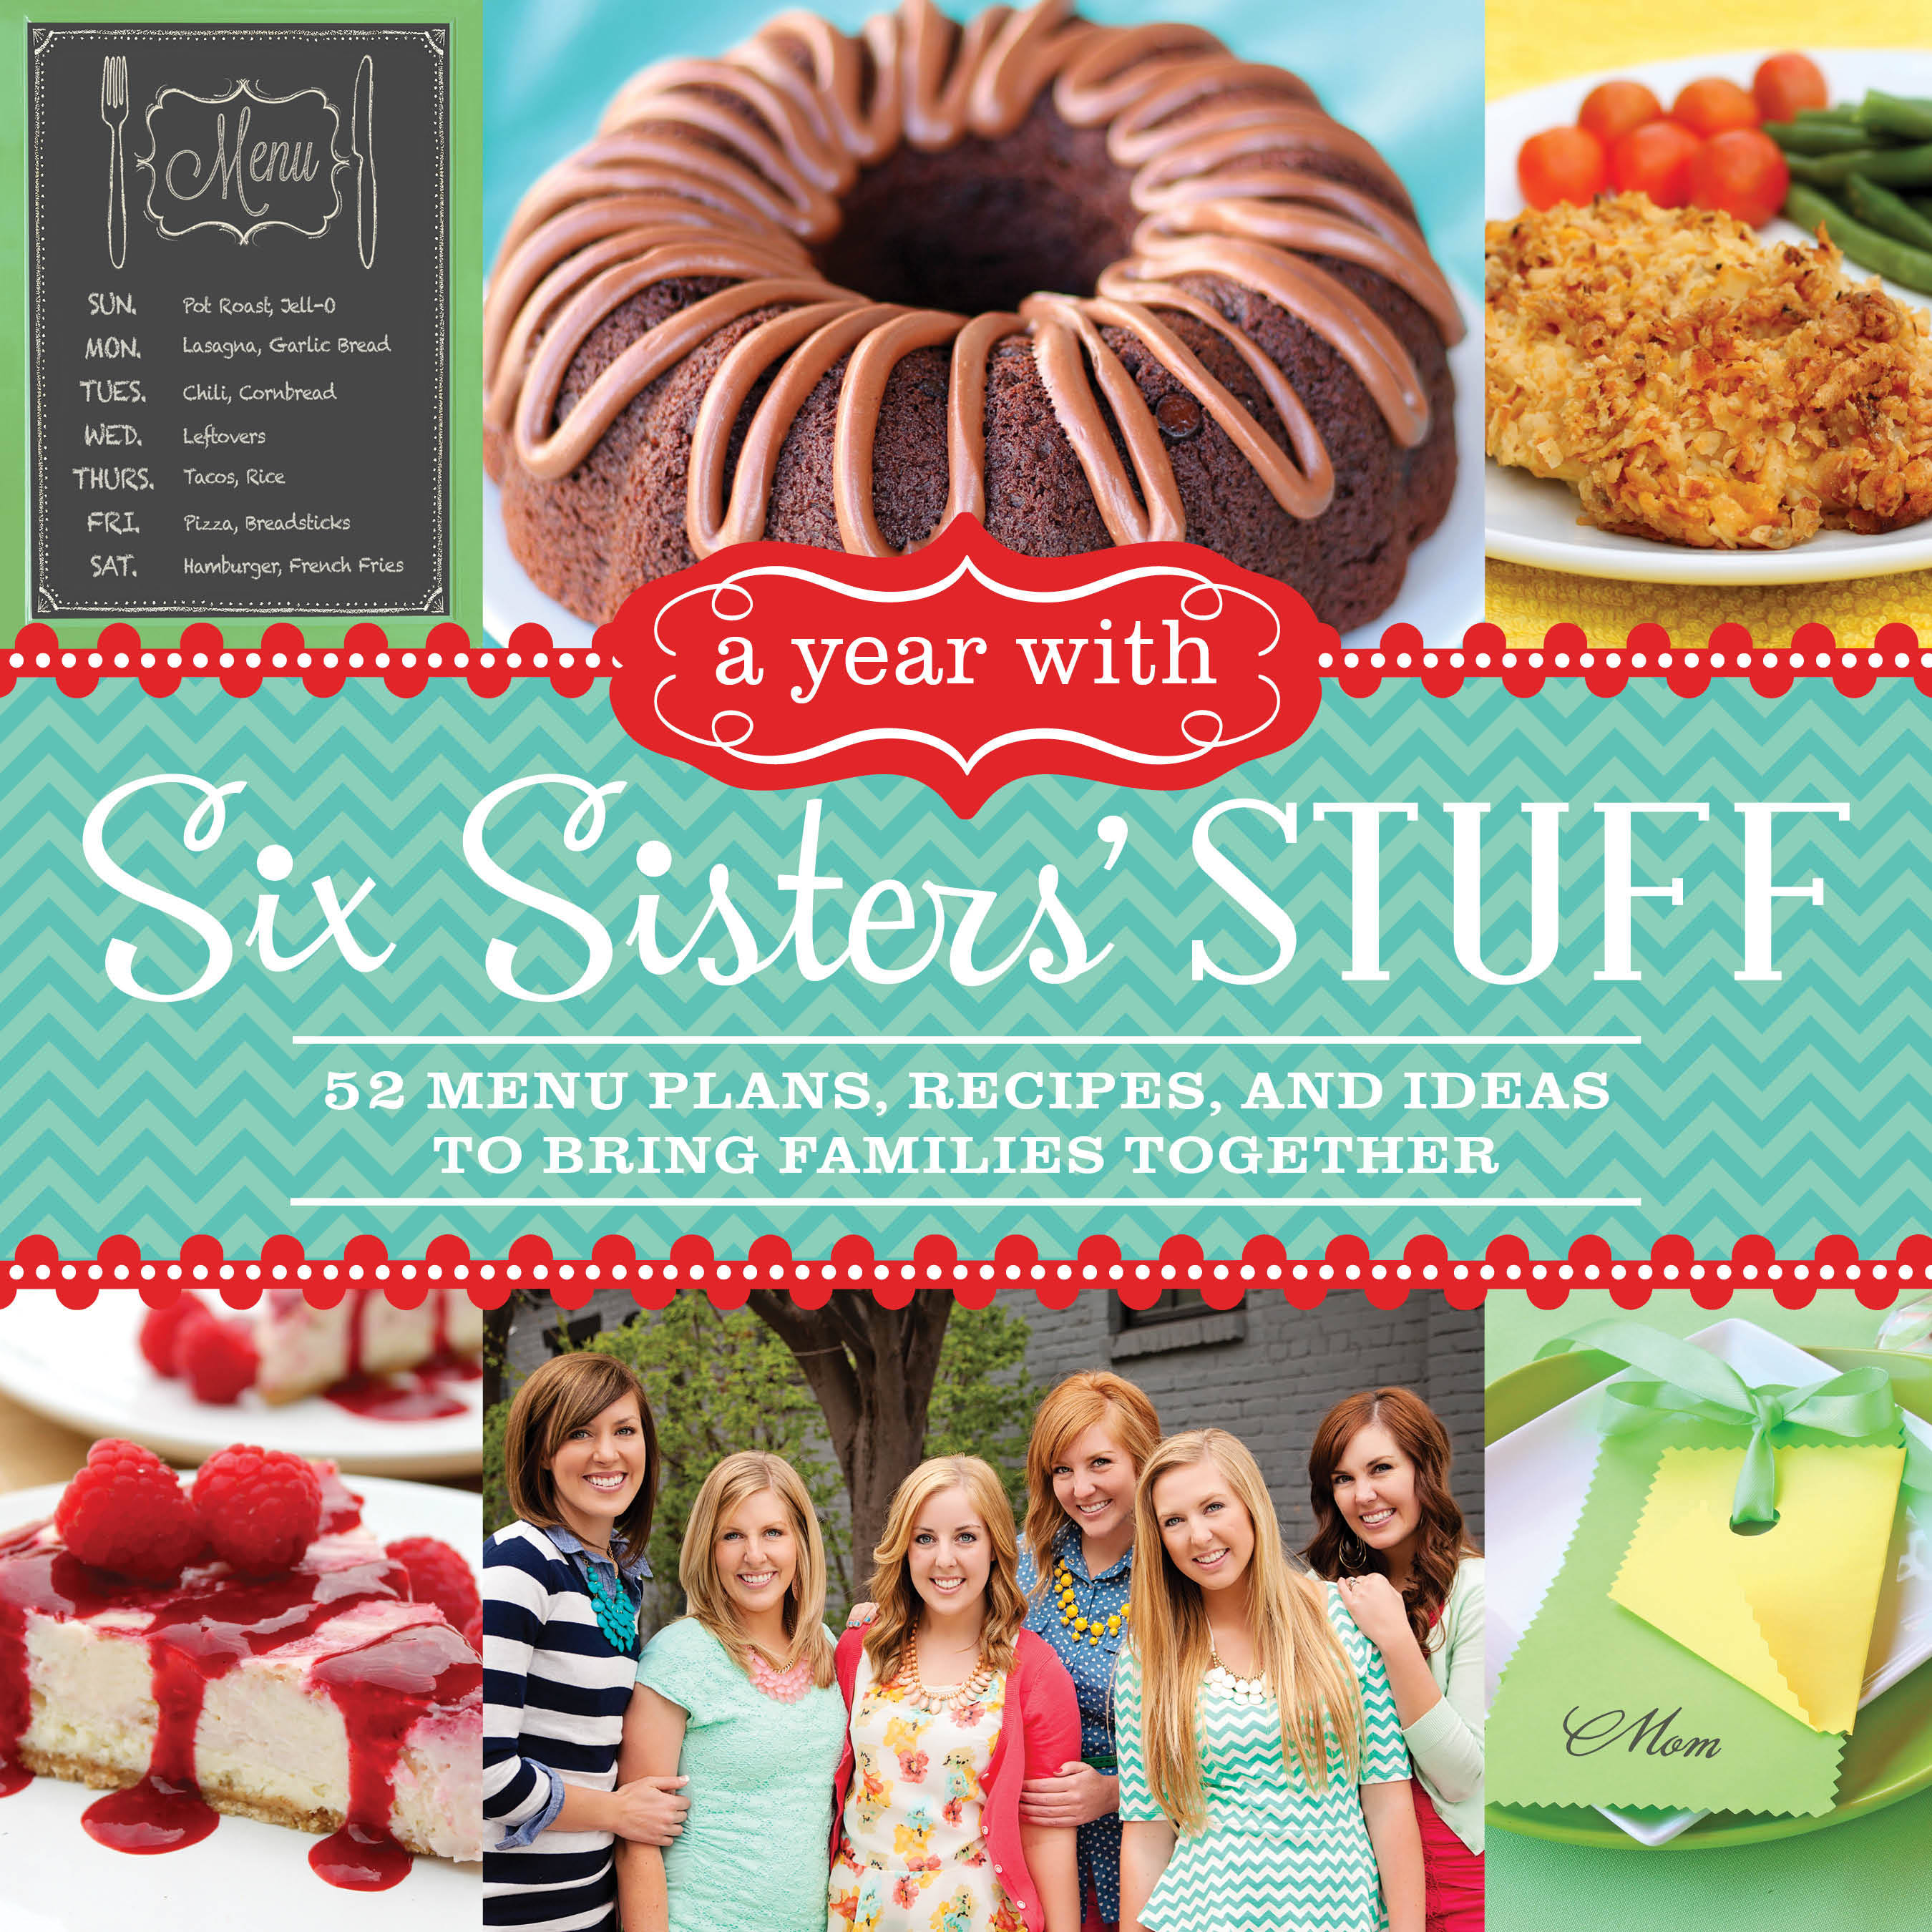 A Year With Six Sisters' Stuff  ~ Blog Tour, Review and Giveaway